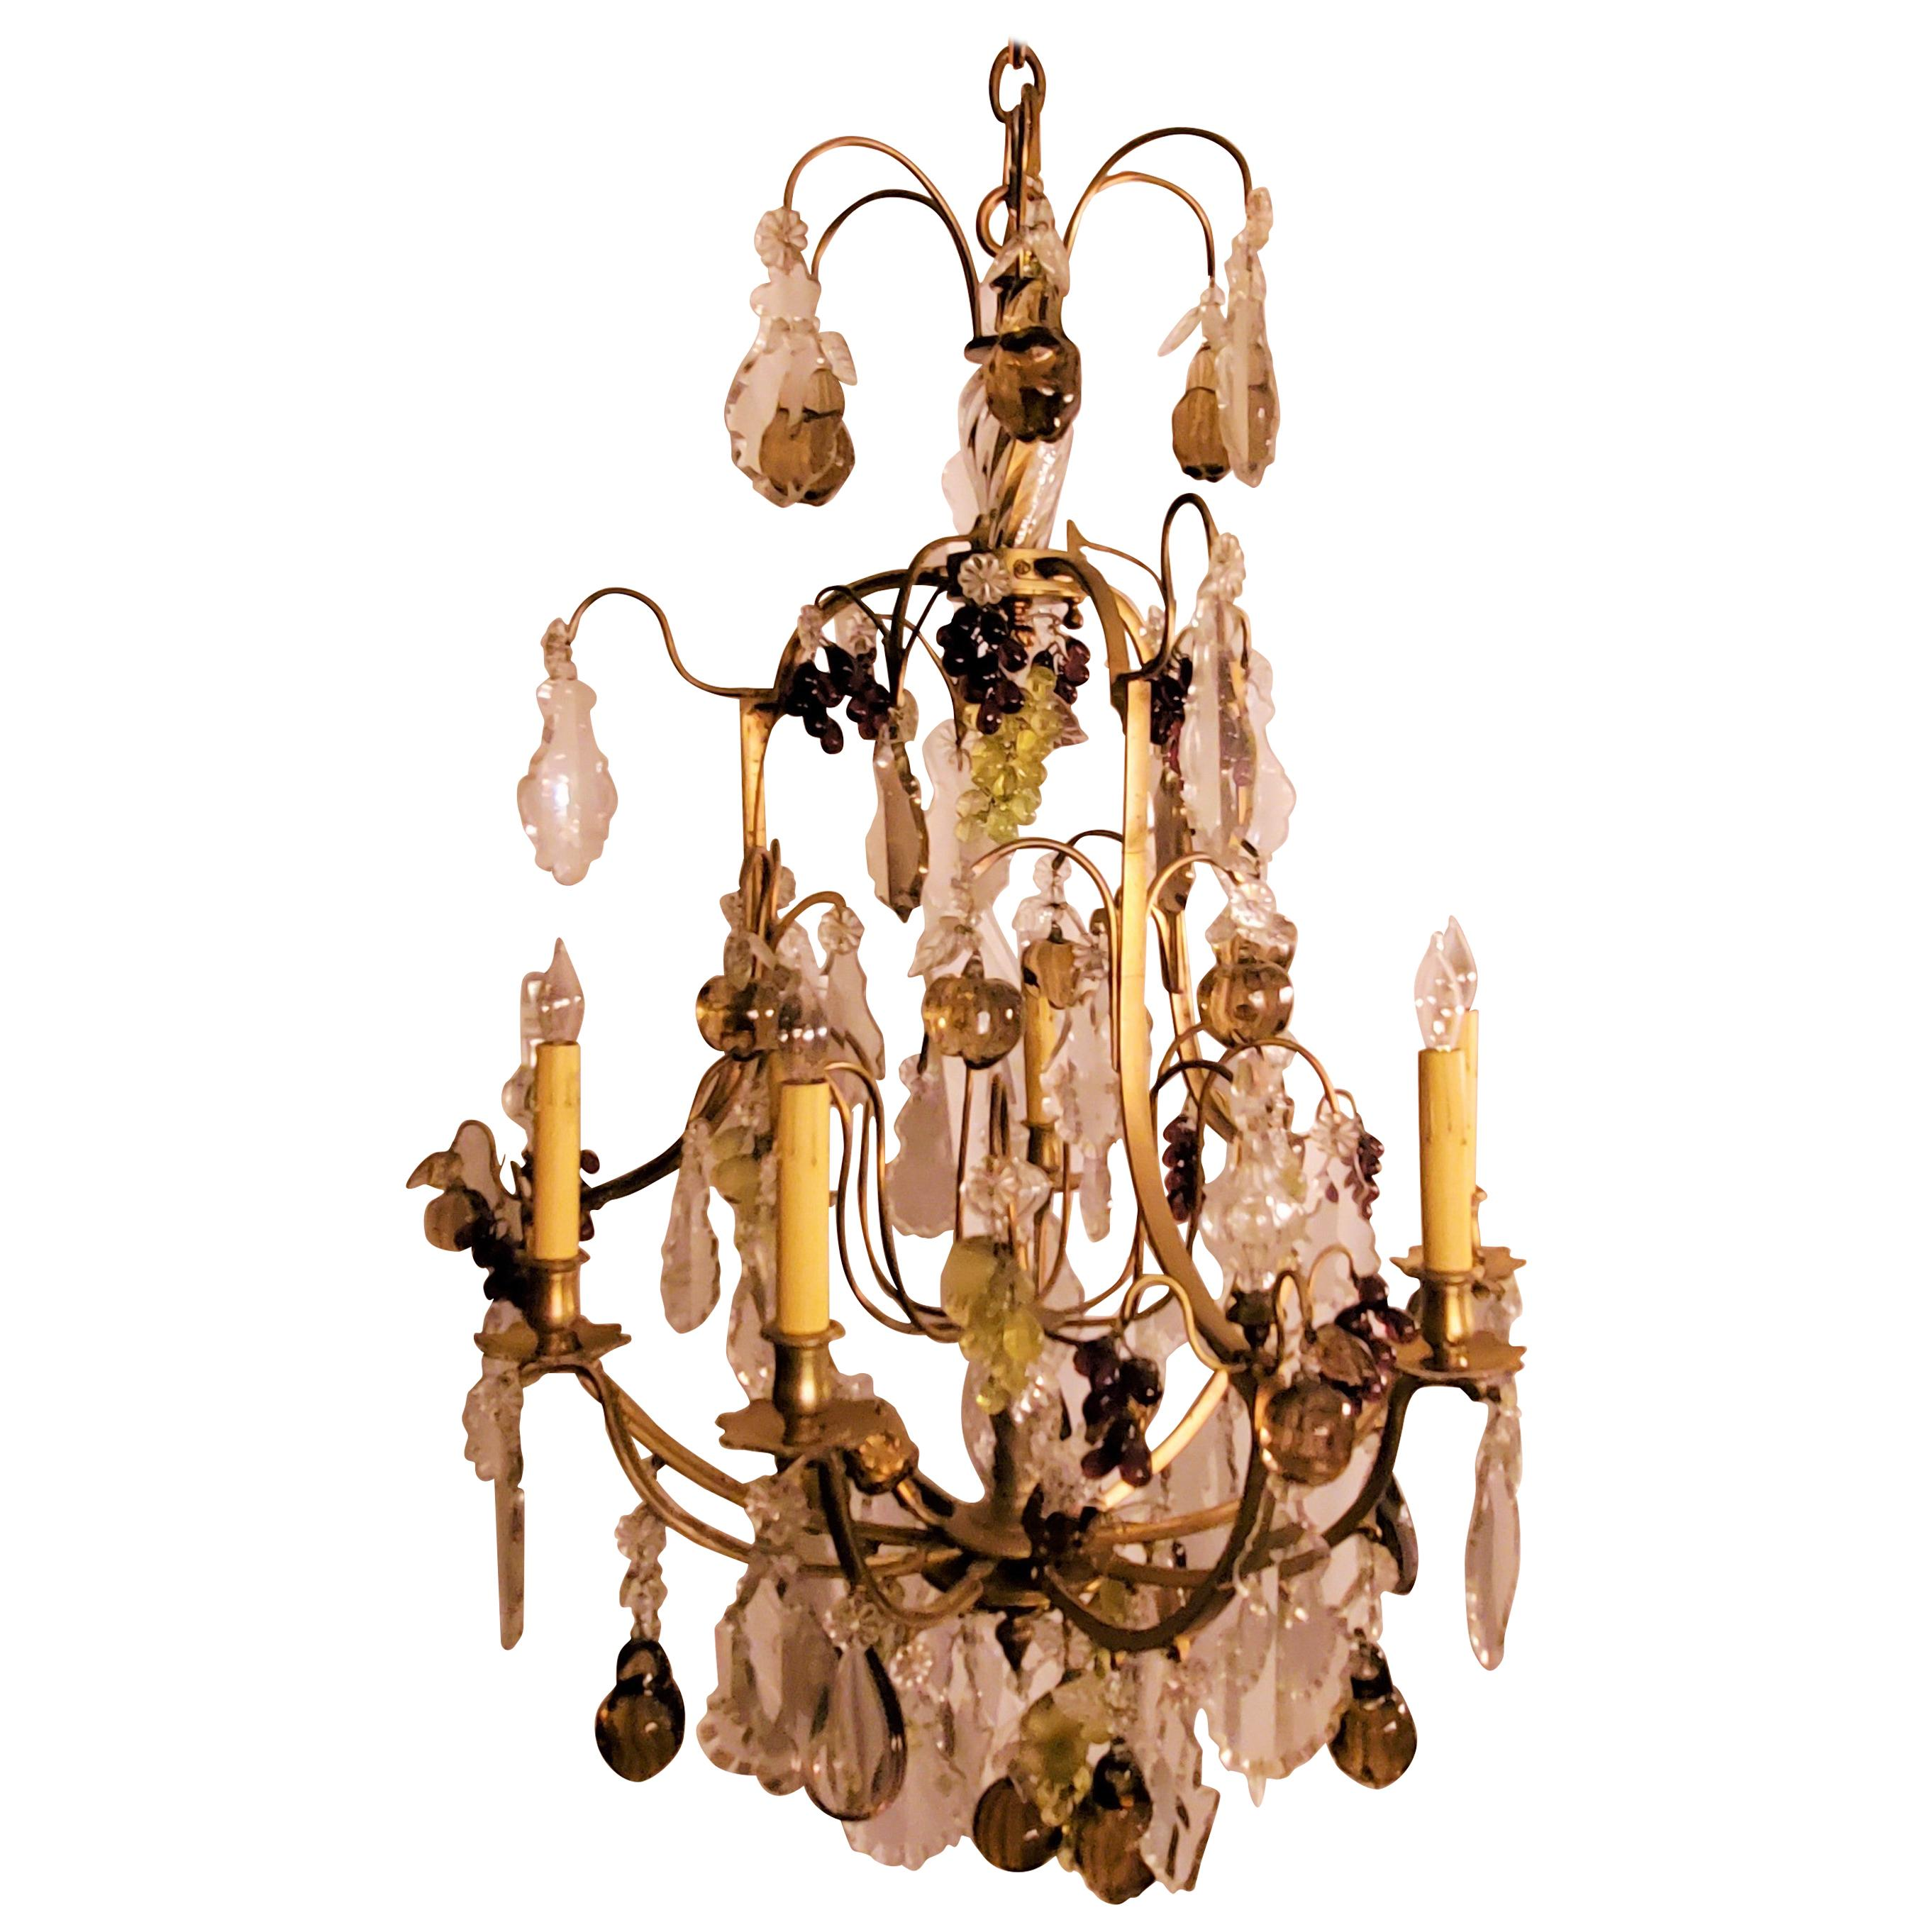 Antique French Crystal and Bronze Chandelier with Baccarat Colored Fruit